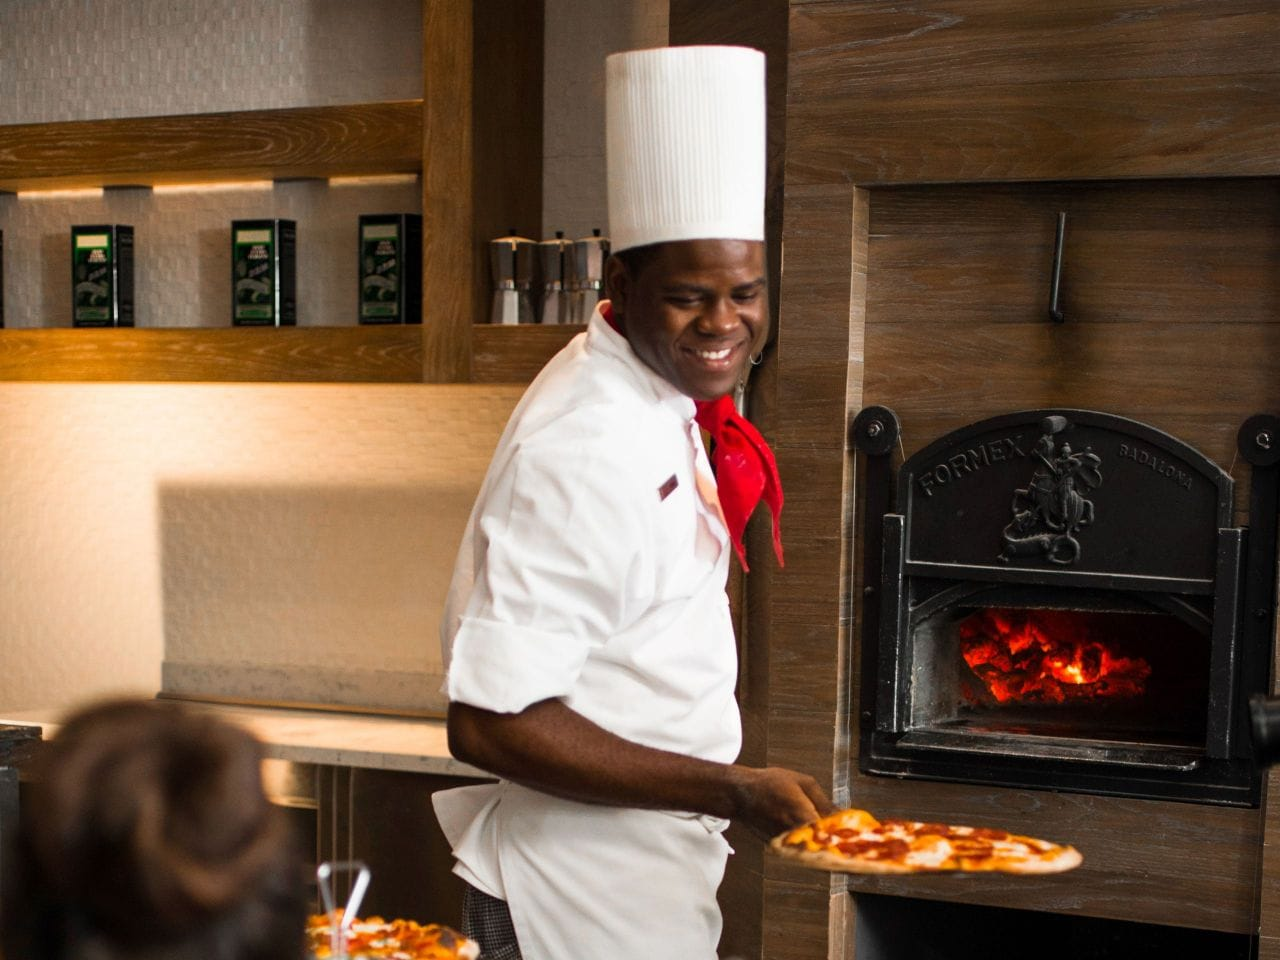 Chef removing pizza from oven at Di RoZa Italian Restaurant at Hyatt Ziva Rose Hall